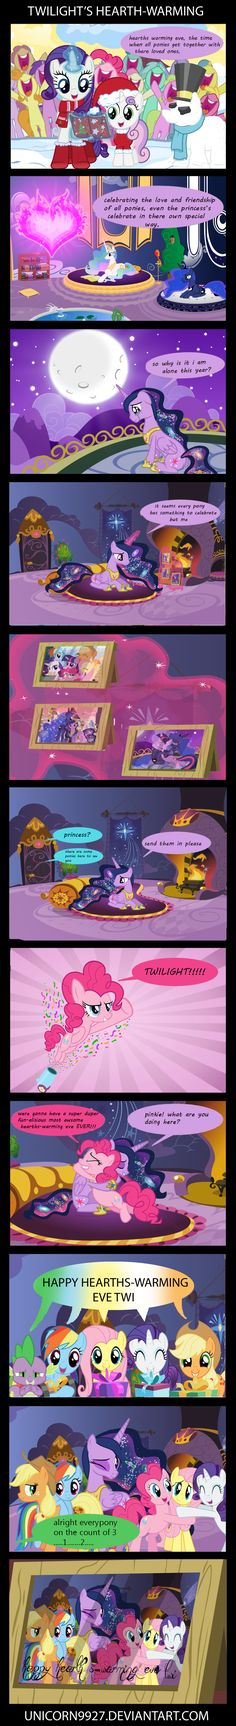 Twilights+hearth's-warming+by+unicorn9927.deviantart.com+on+@deviantART